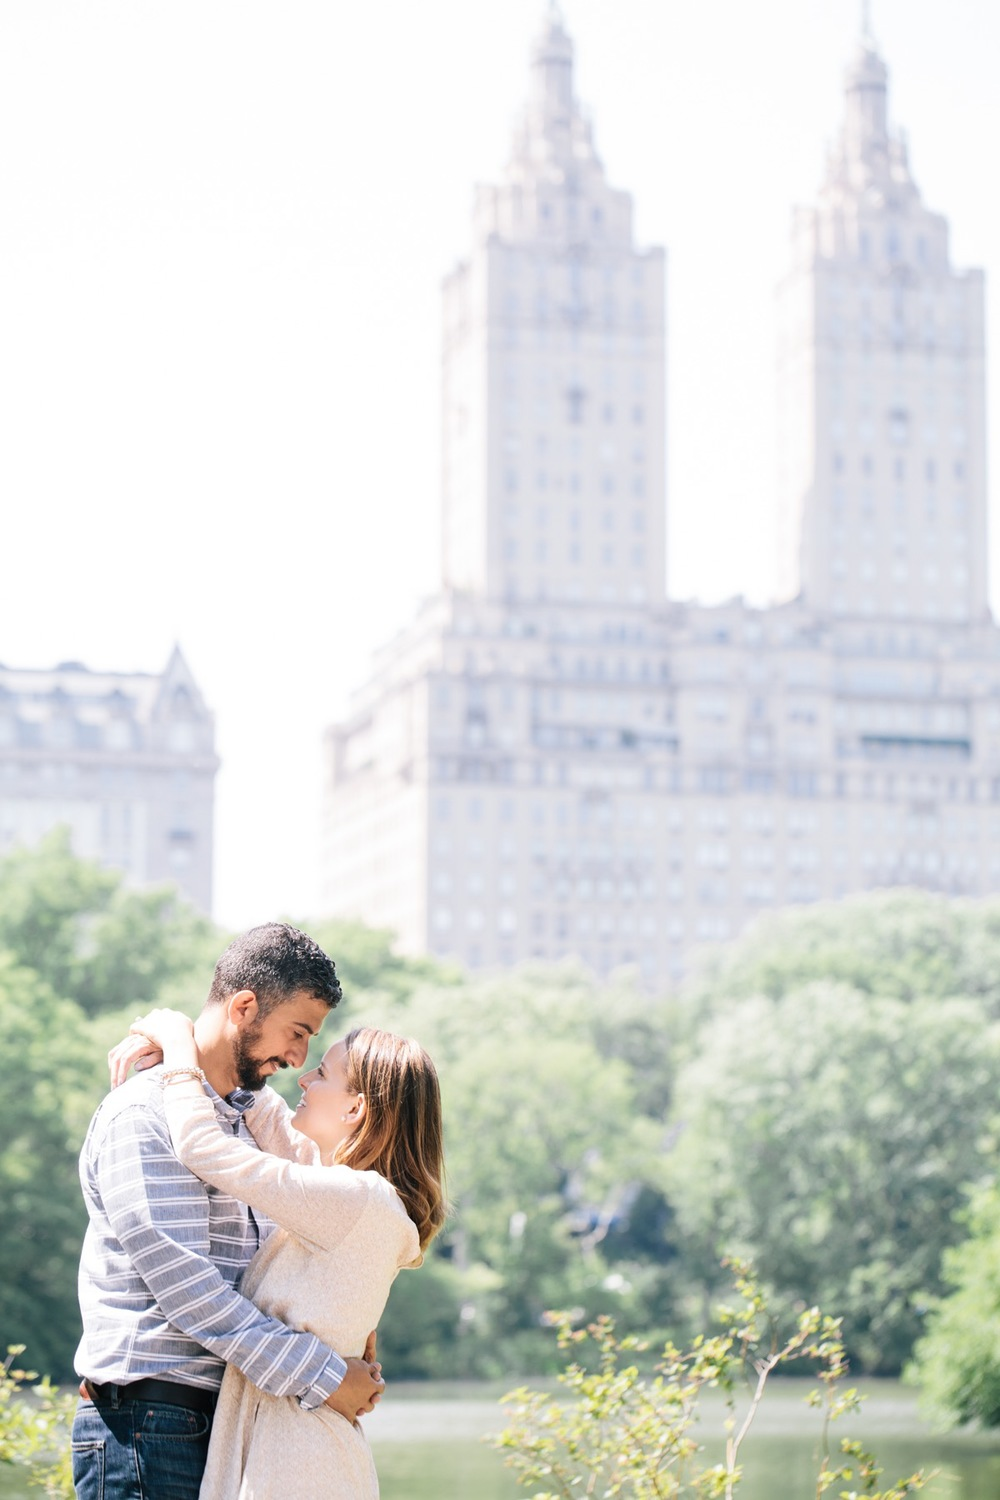 romantic couple in Central Park New York City